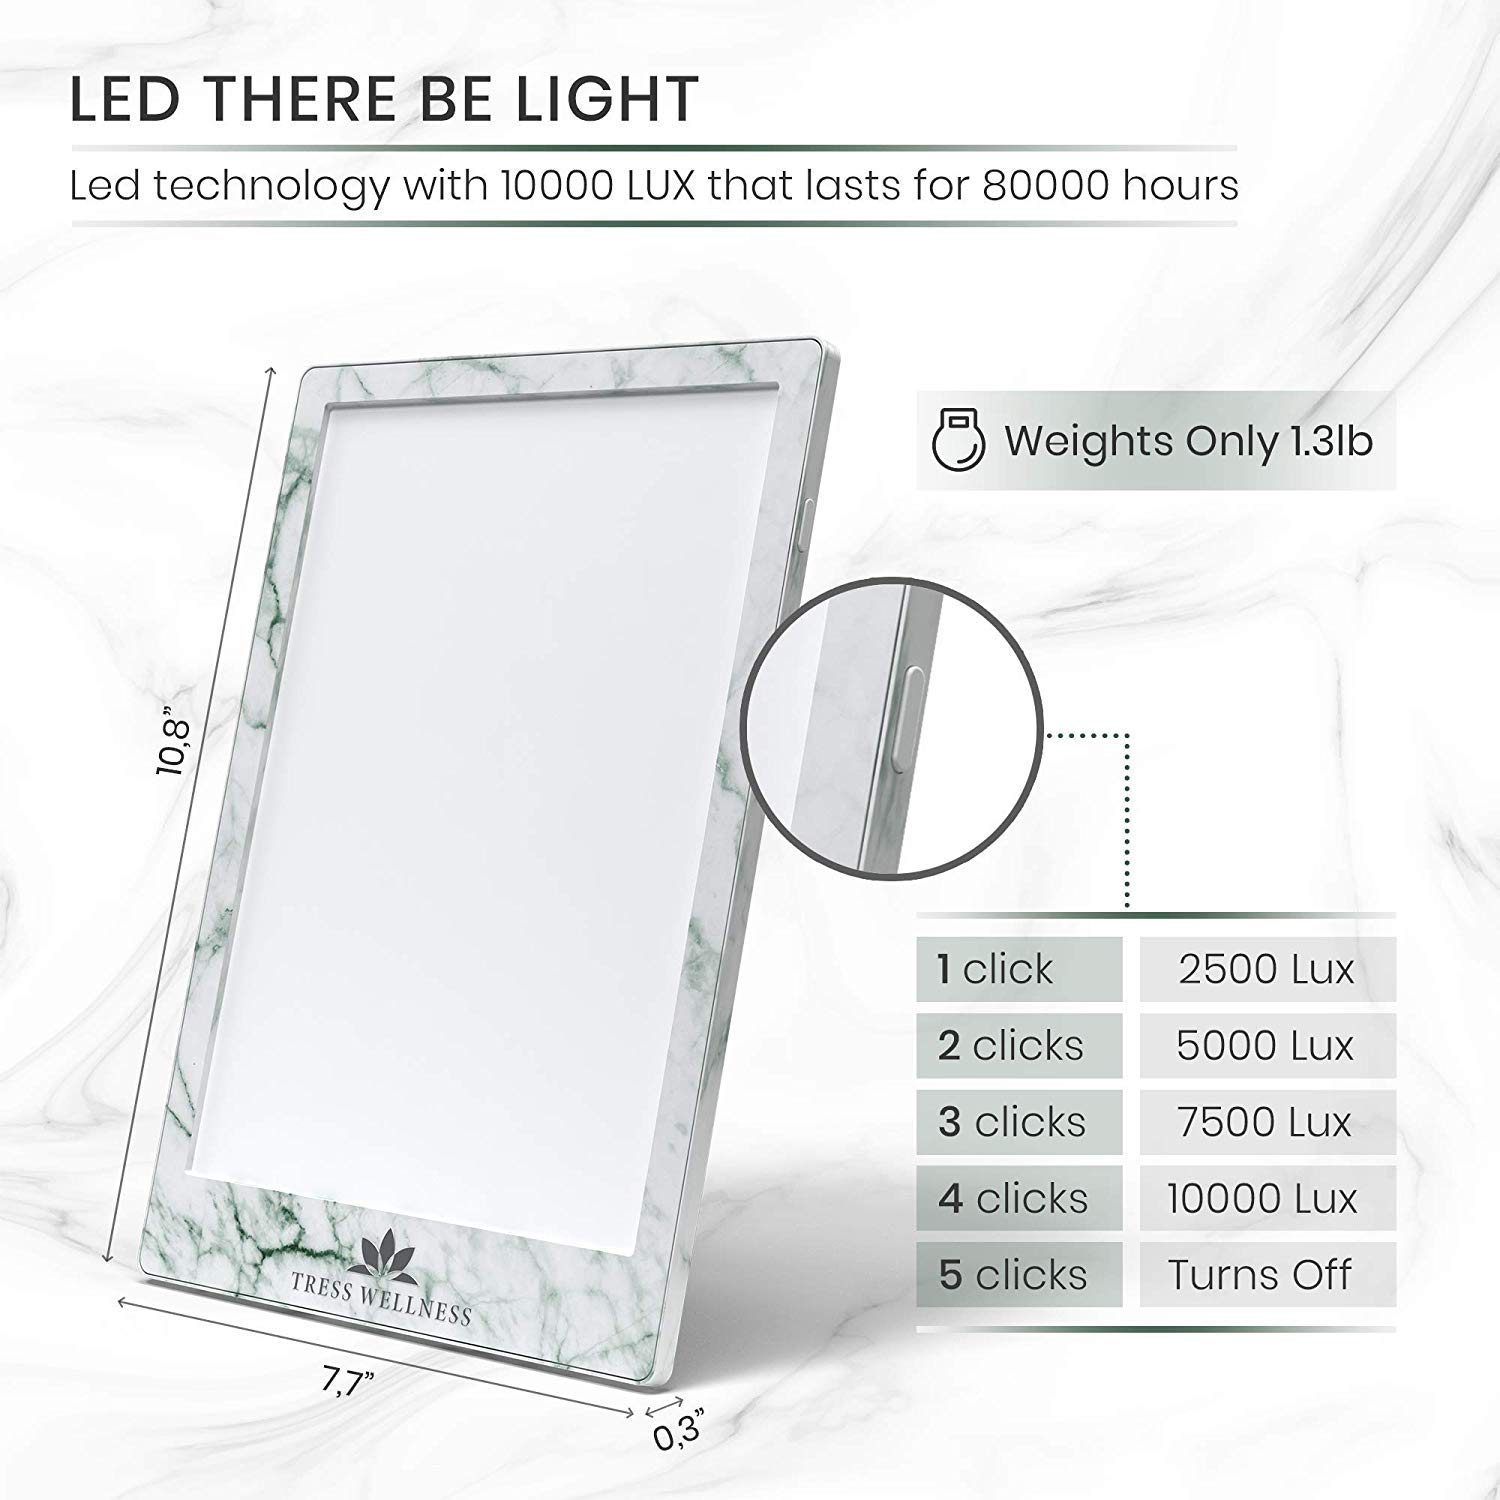 Light Therapy Lamp - 10000 LUX (4 Brightness Levels) - 2019 Slim Design - Sun Lamp - Sun Lamps - Light Box Therapy - Therapy Light by Tress Wellness (Image #3)